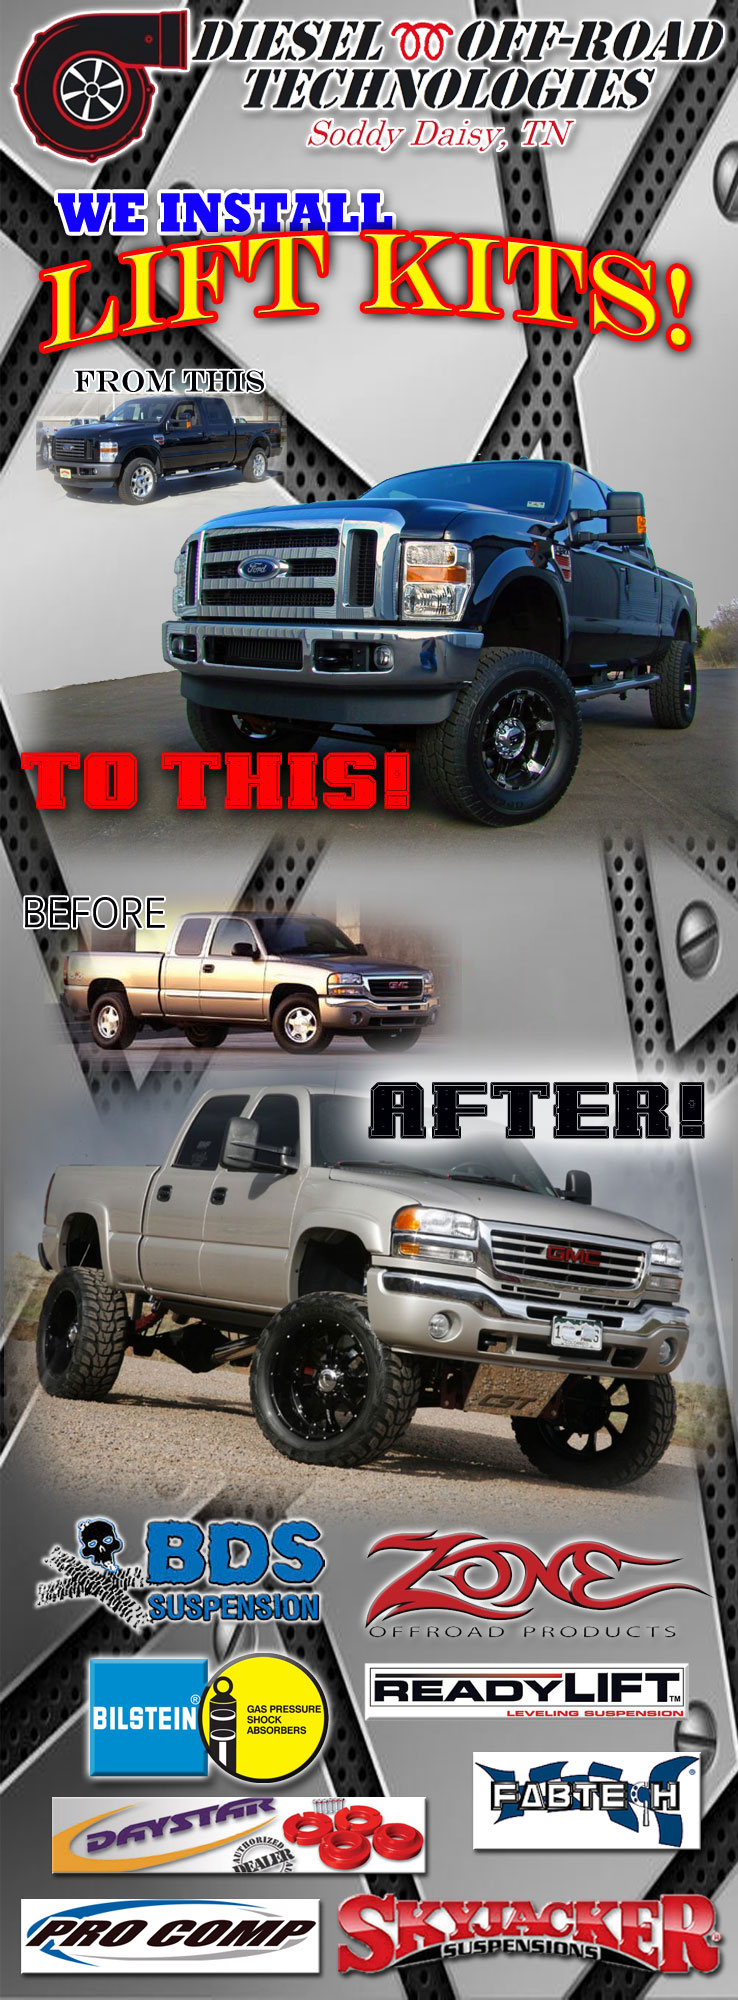 Diesel-off-road-MAIN-Page-Graphics---LIFT-KITS-2